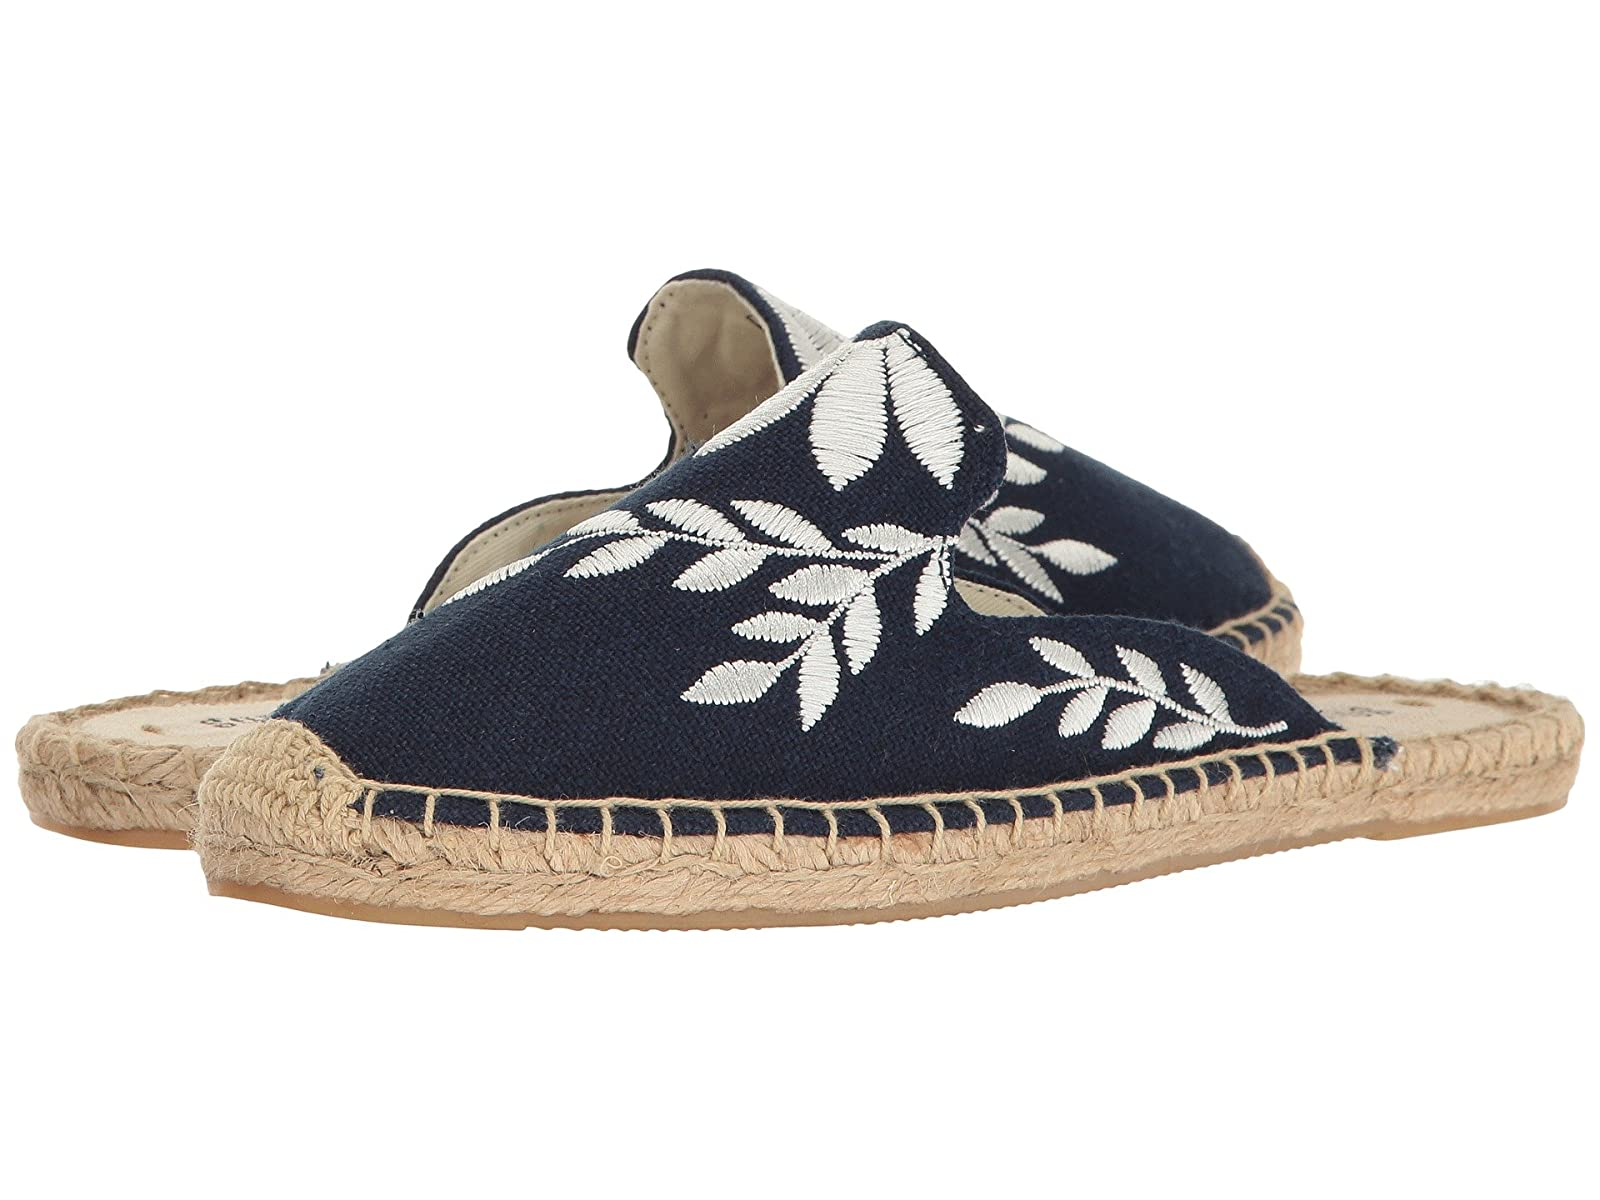 Soludos Embroidered Floral MuleAtmospheric grades have affordable shoes